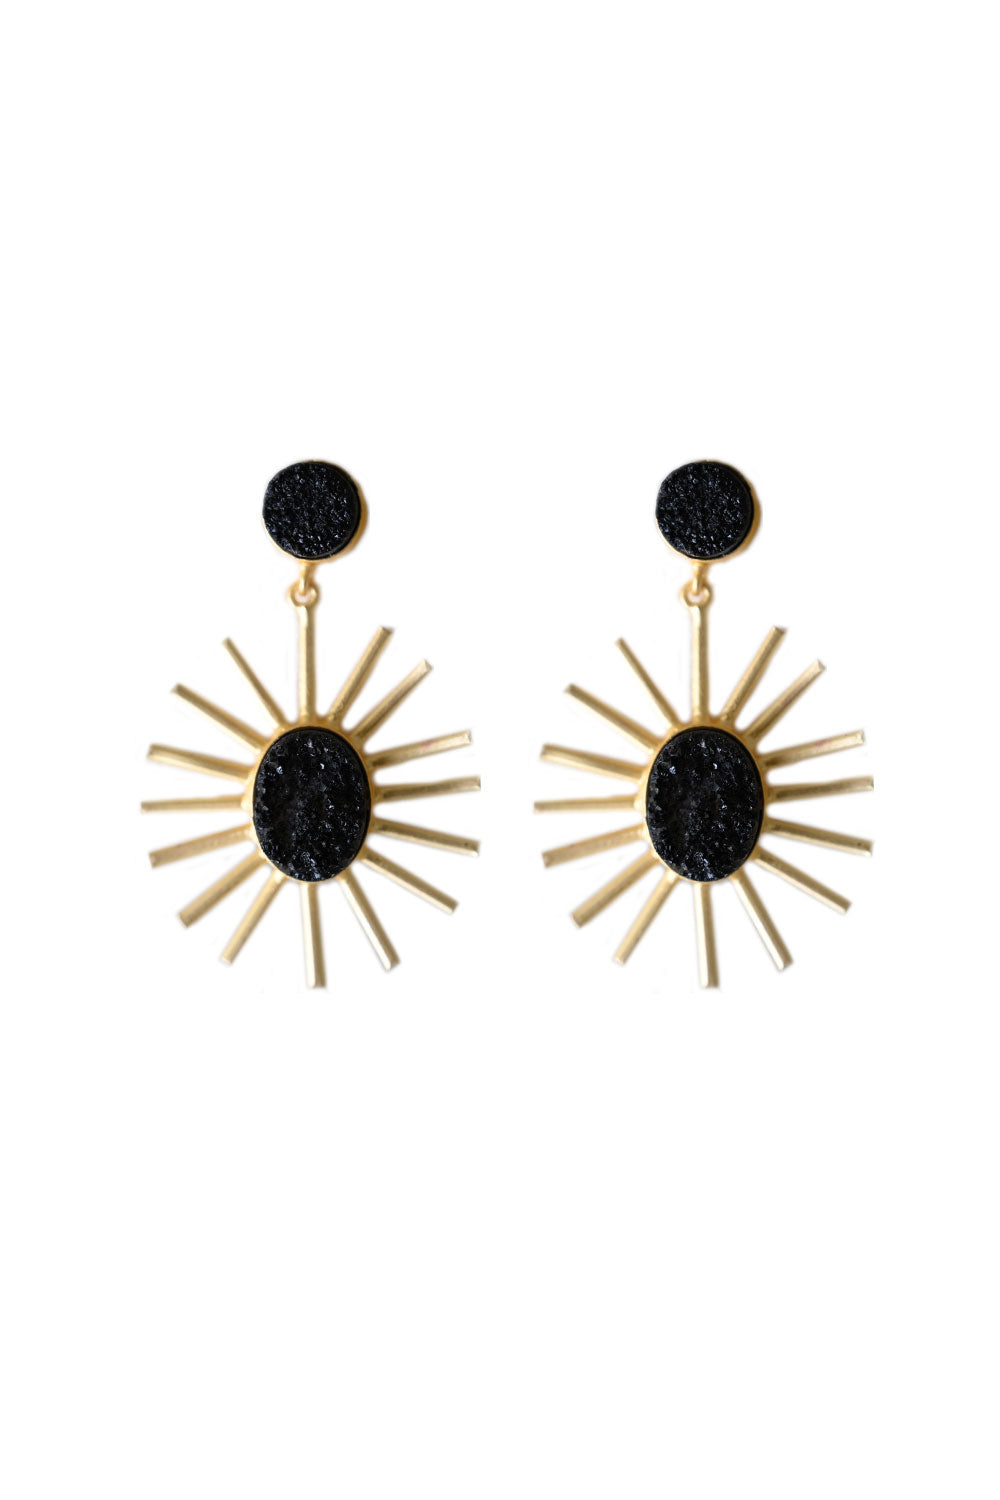 Cleopatra Black Earring - Kabana Shop